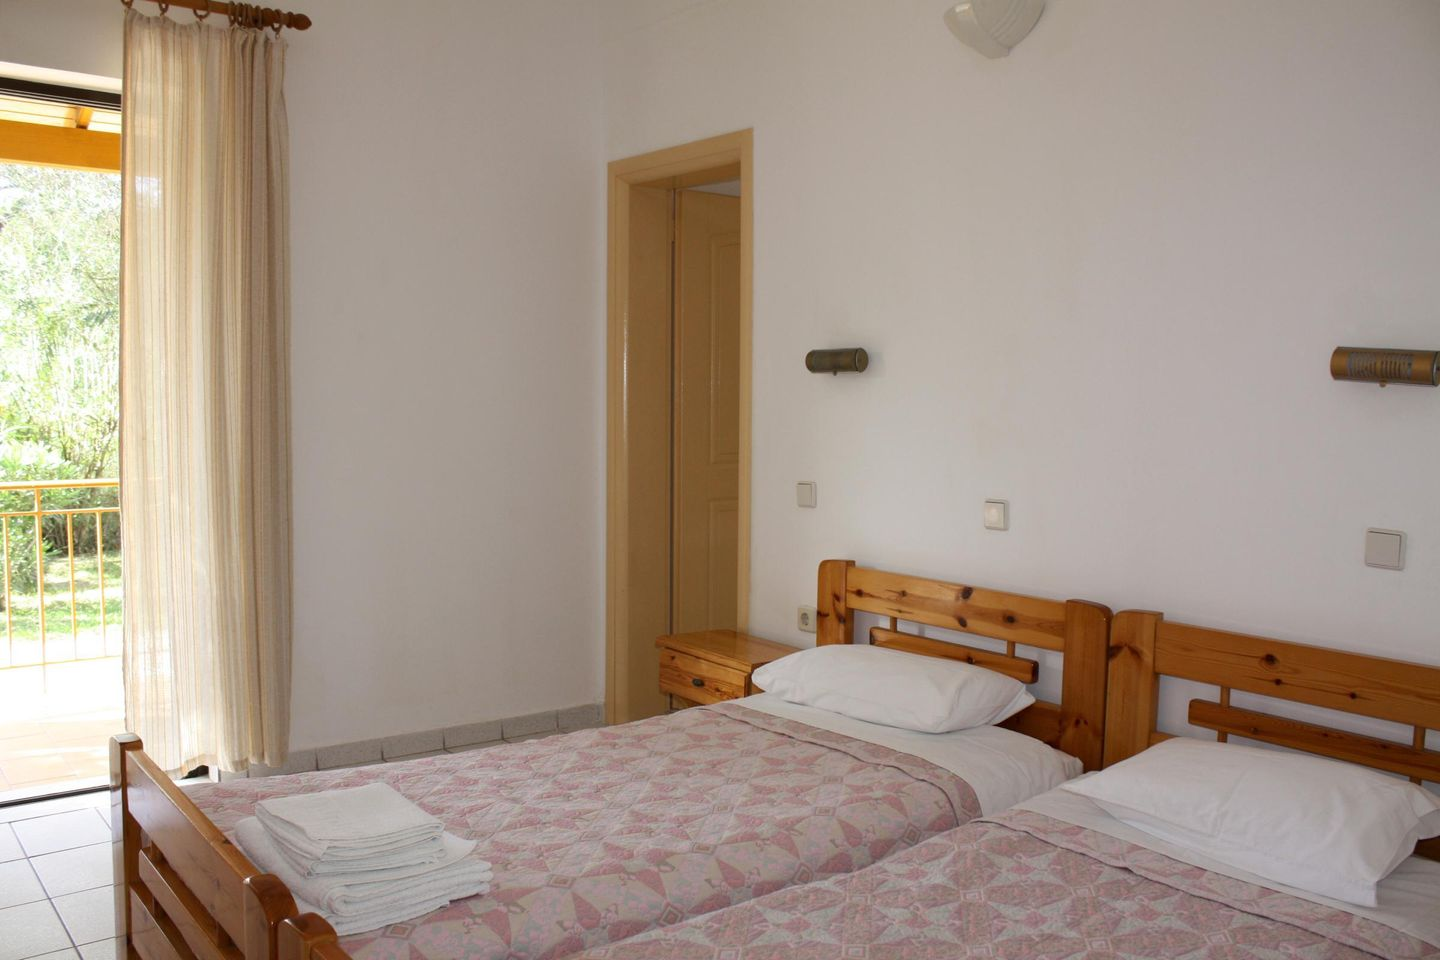 Holiday apartment IRINI-APPARTEMENT (499956), Aghios Petros, Corfu, Ionian Islands, Greece, picture 10